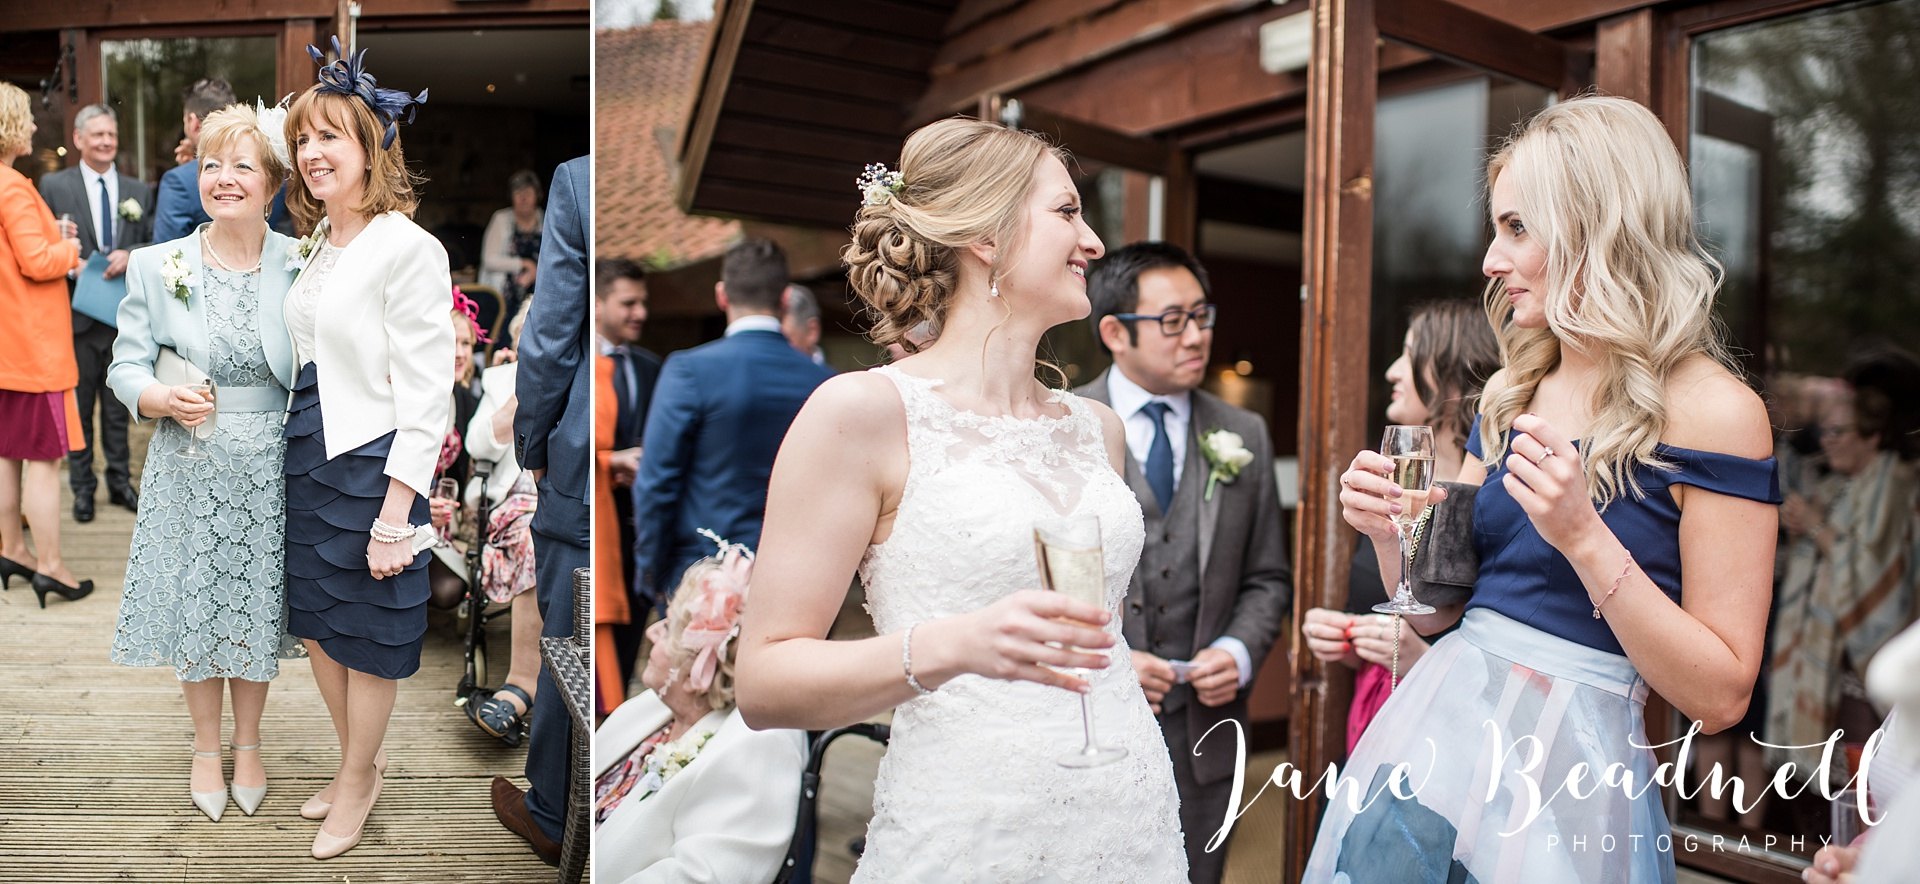 Otley Chevin Lodge wedding photography by Jane Beadnell Photography Leeds_0075